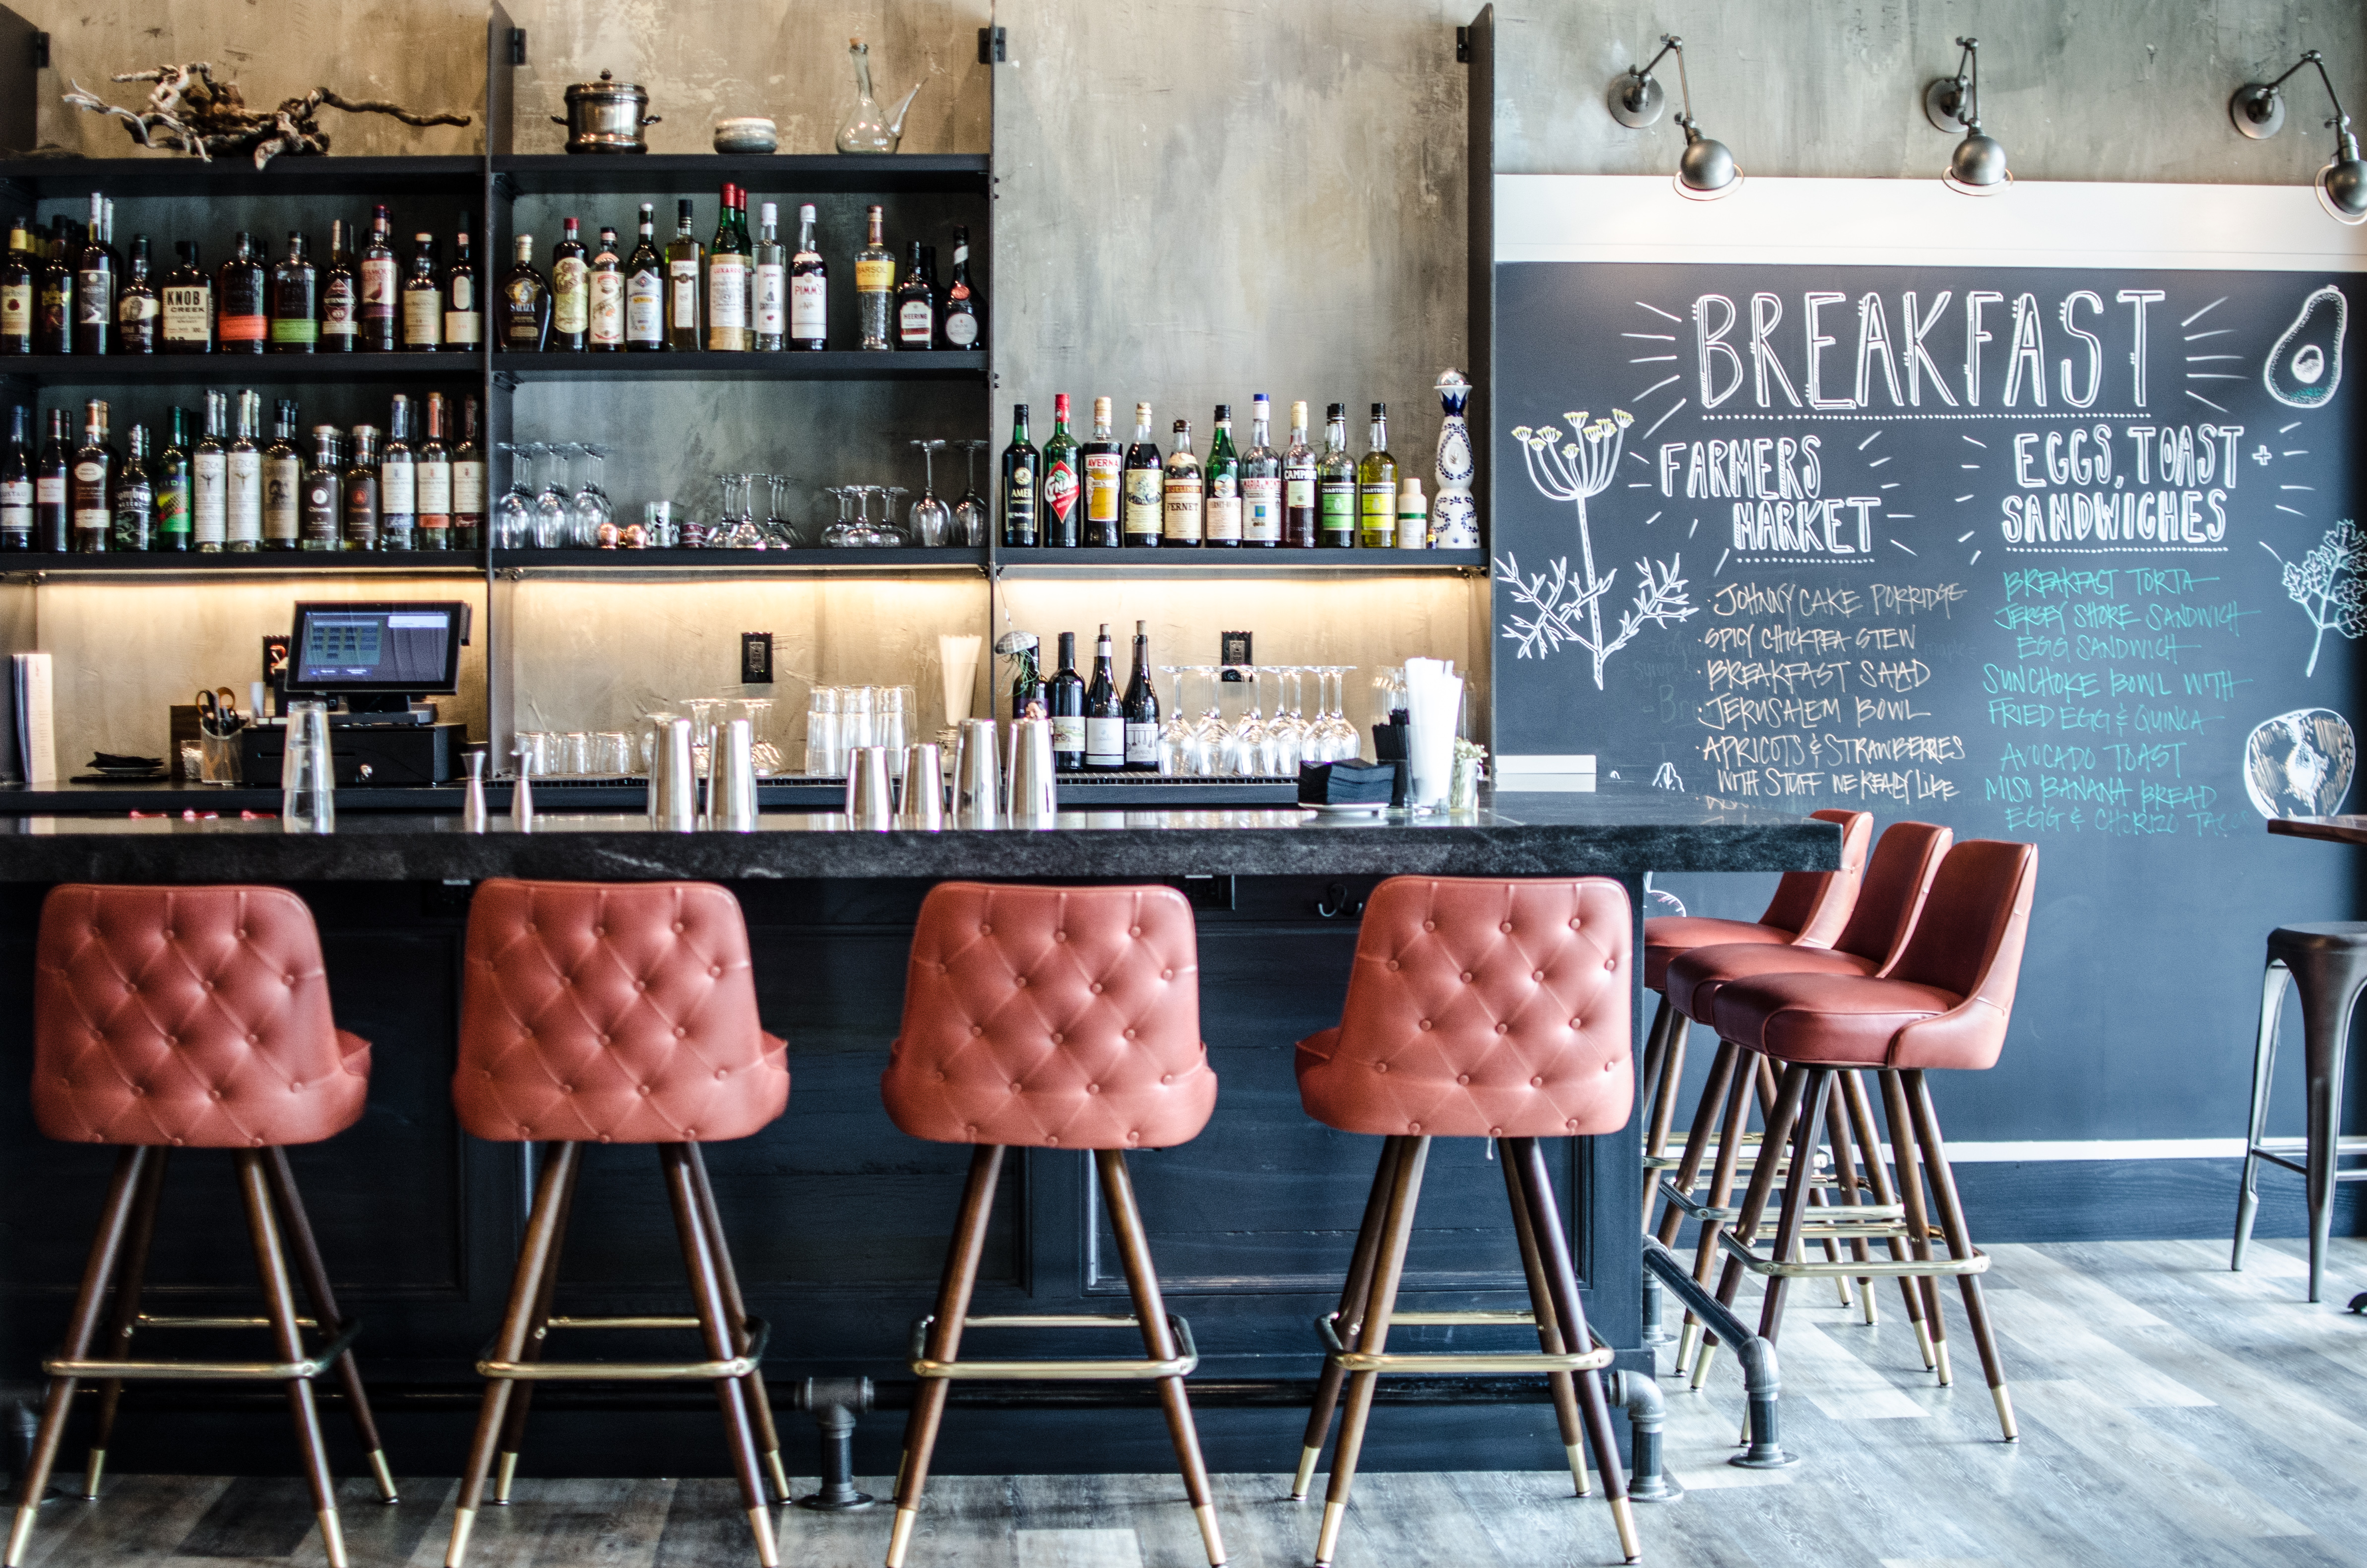 Pale red cushioned barstools line a black bar behind which stands a wall and shelving for liquor bottles